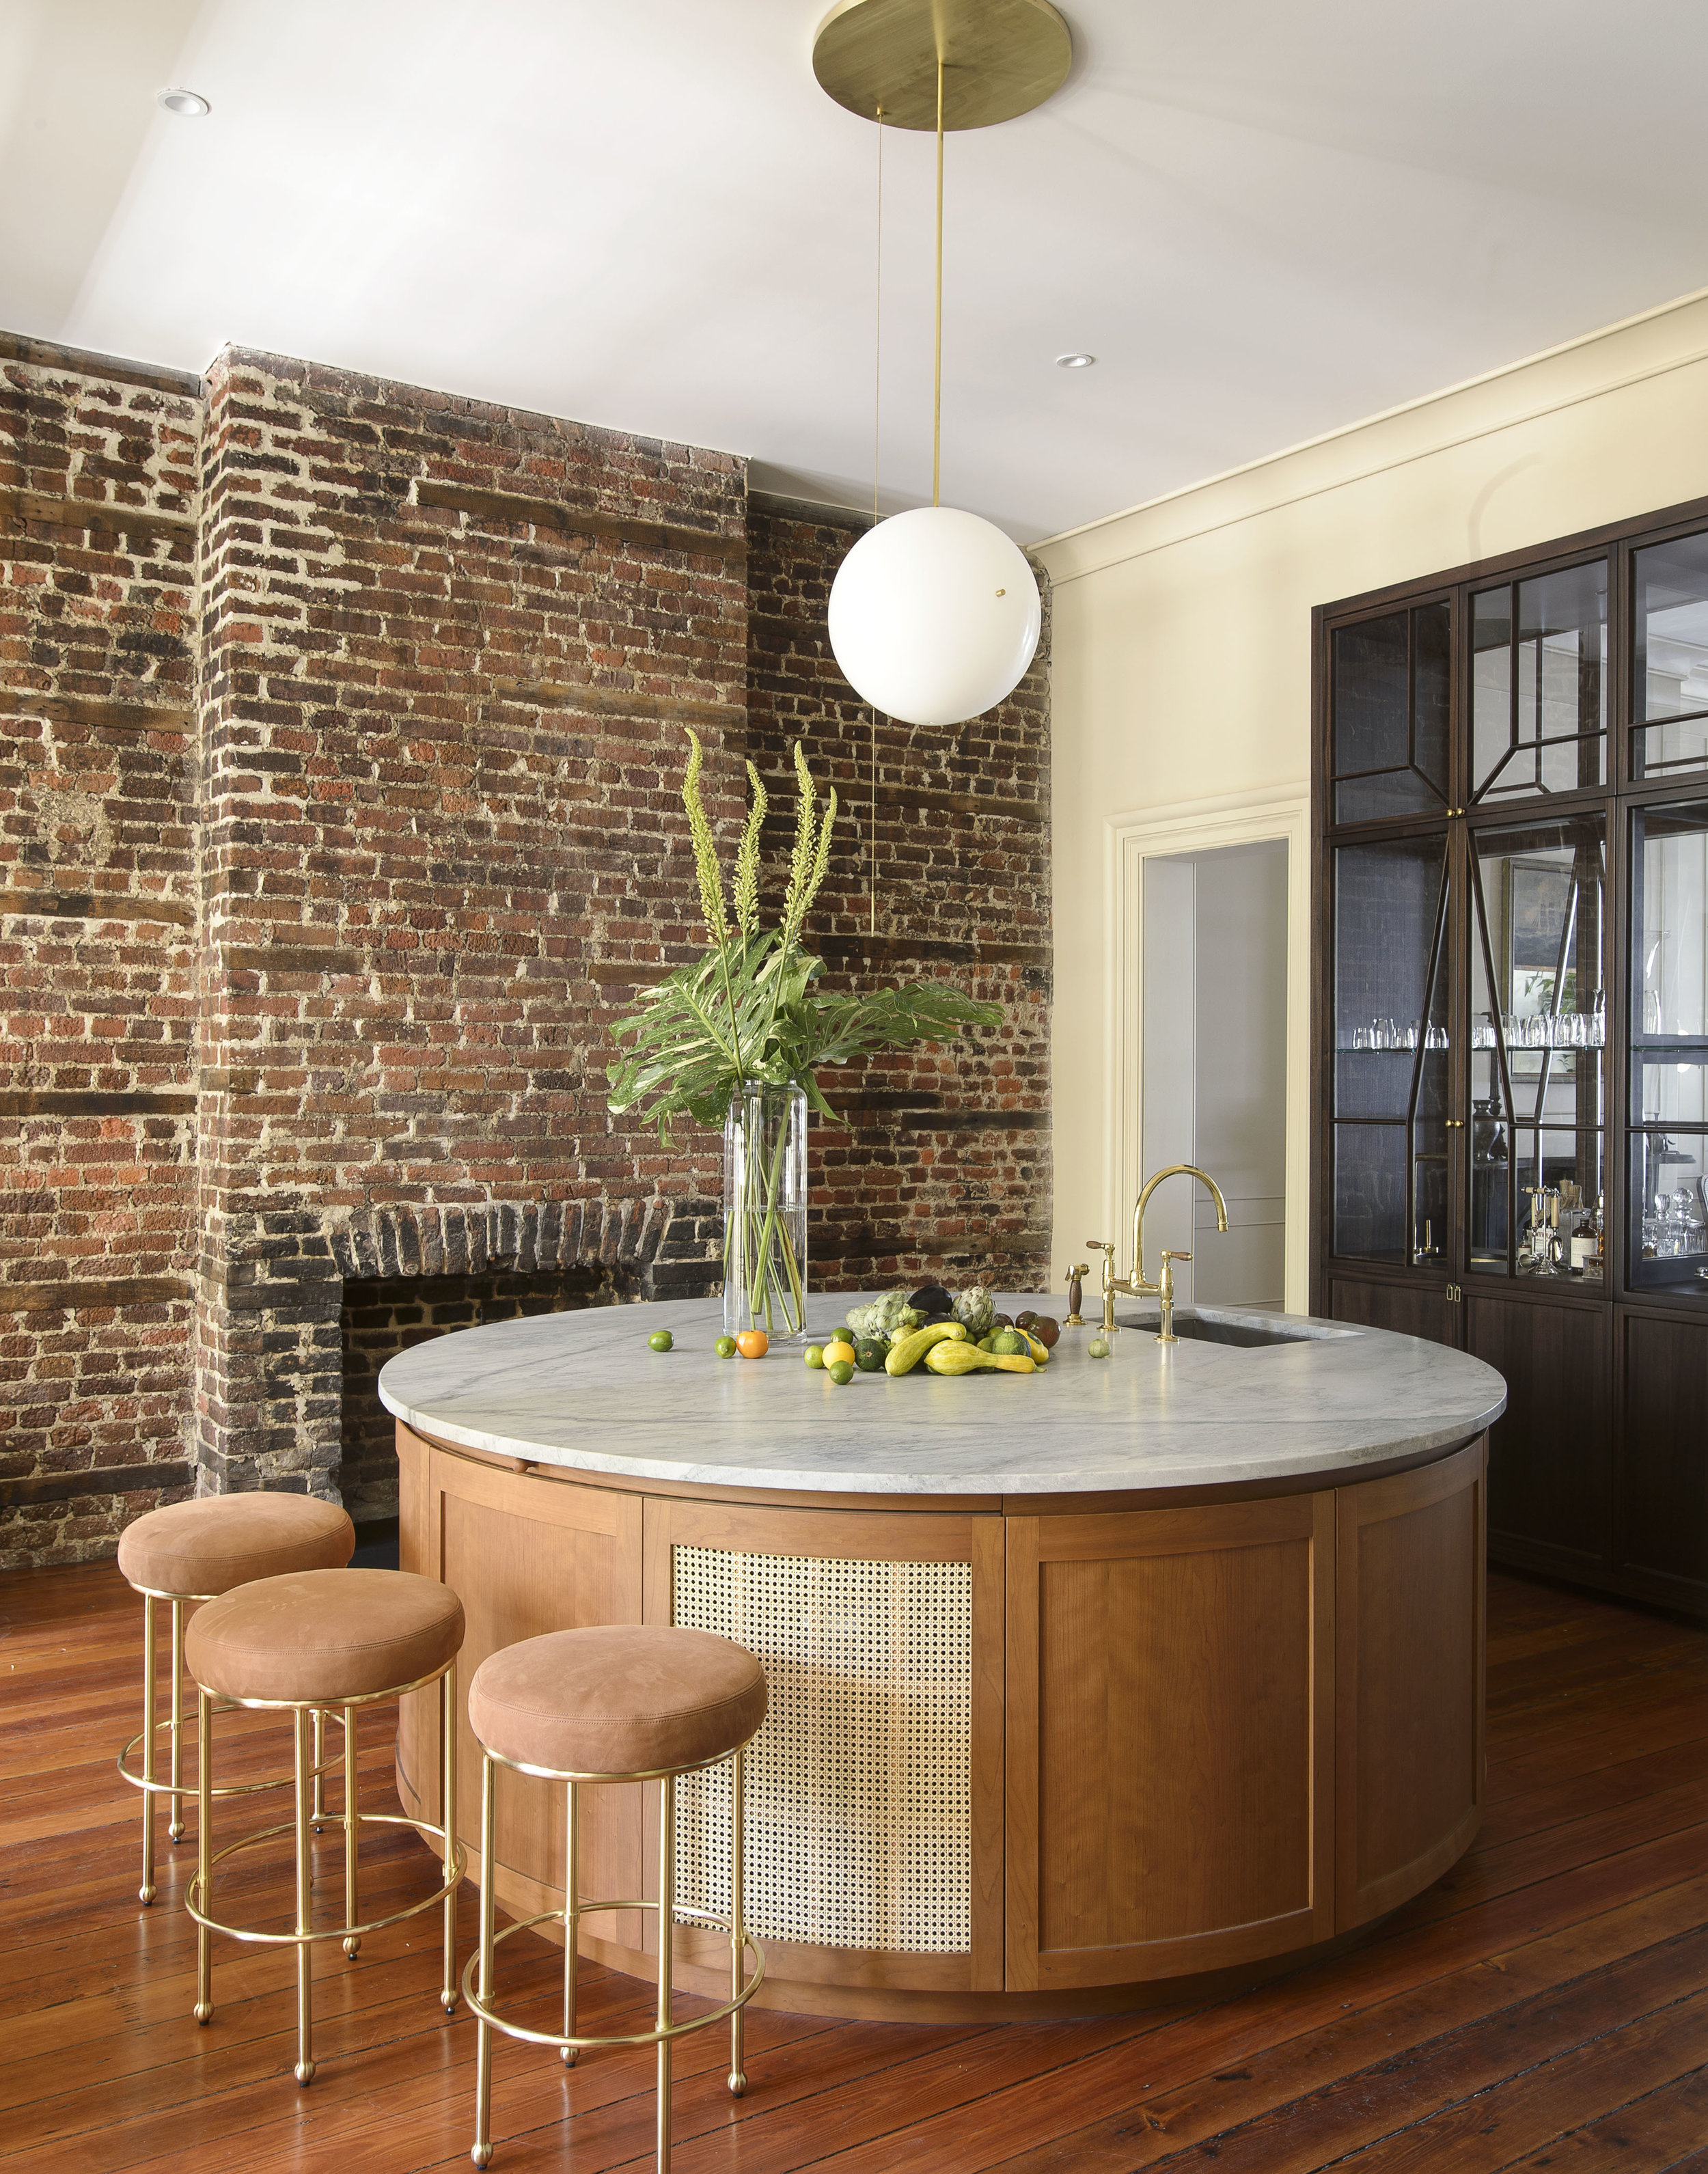 Workstead House - Meadors crafted the cabinetry for this project. Click the image to read the full New York Times article.